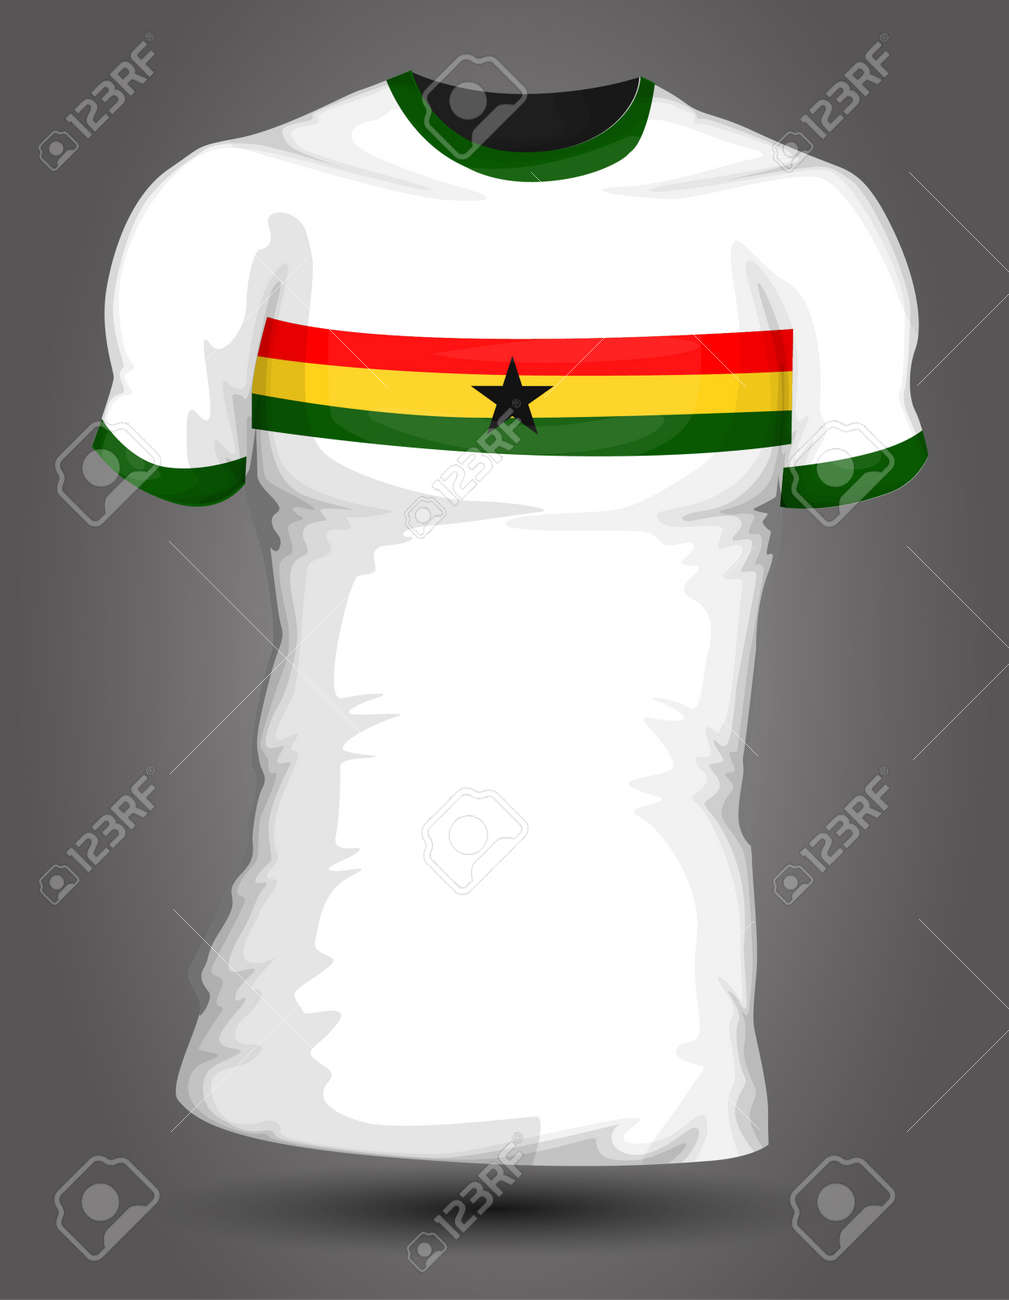 1cb1183cd Ghana soccer jersey Stock Vector - 27320470